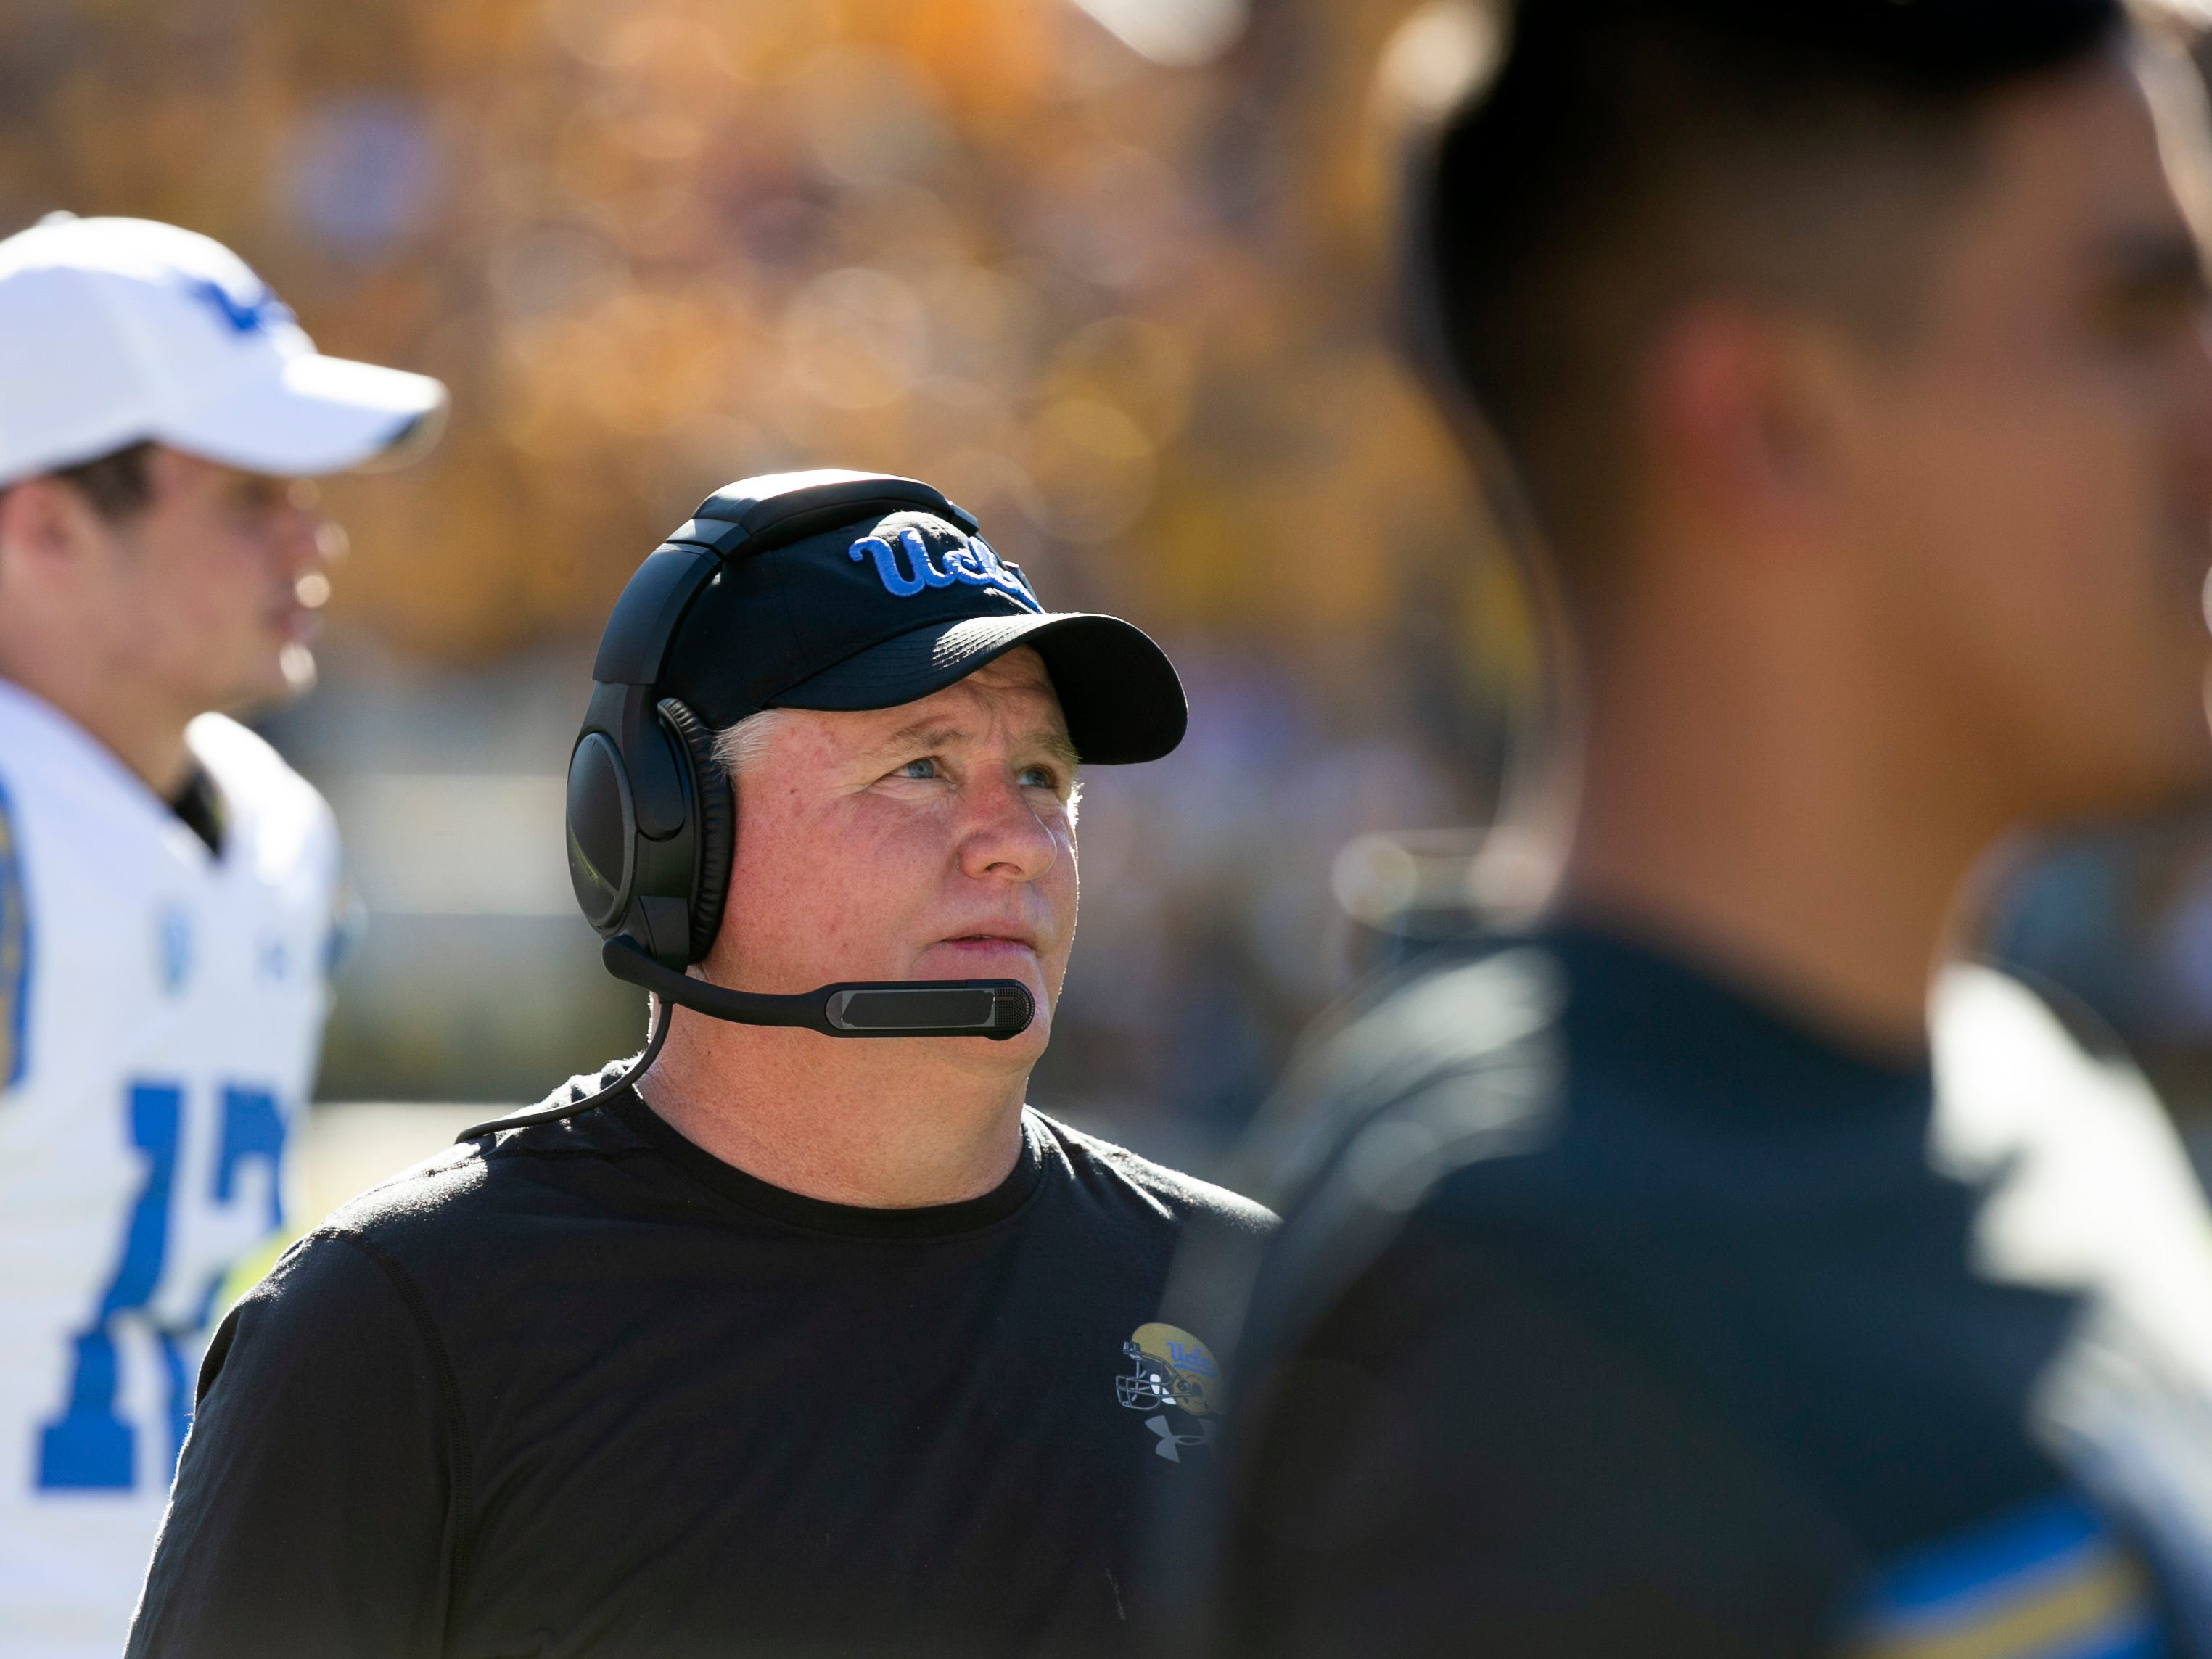 UCLA head coach Chip Kelly during the fourth quarter of the PAC-12 college football against Arizona State at Sun Devil Stadium in Tempe on Saturday, November 10, 2018.